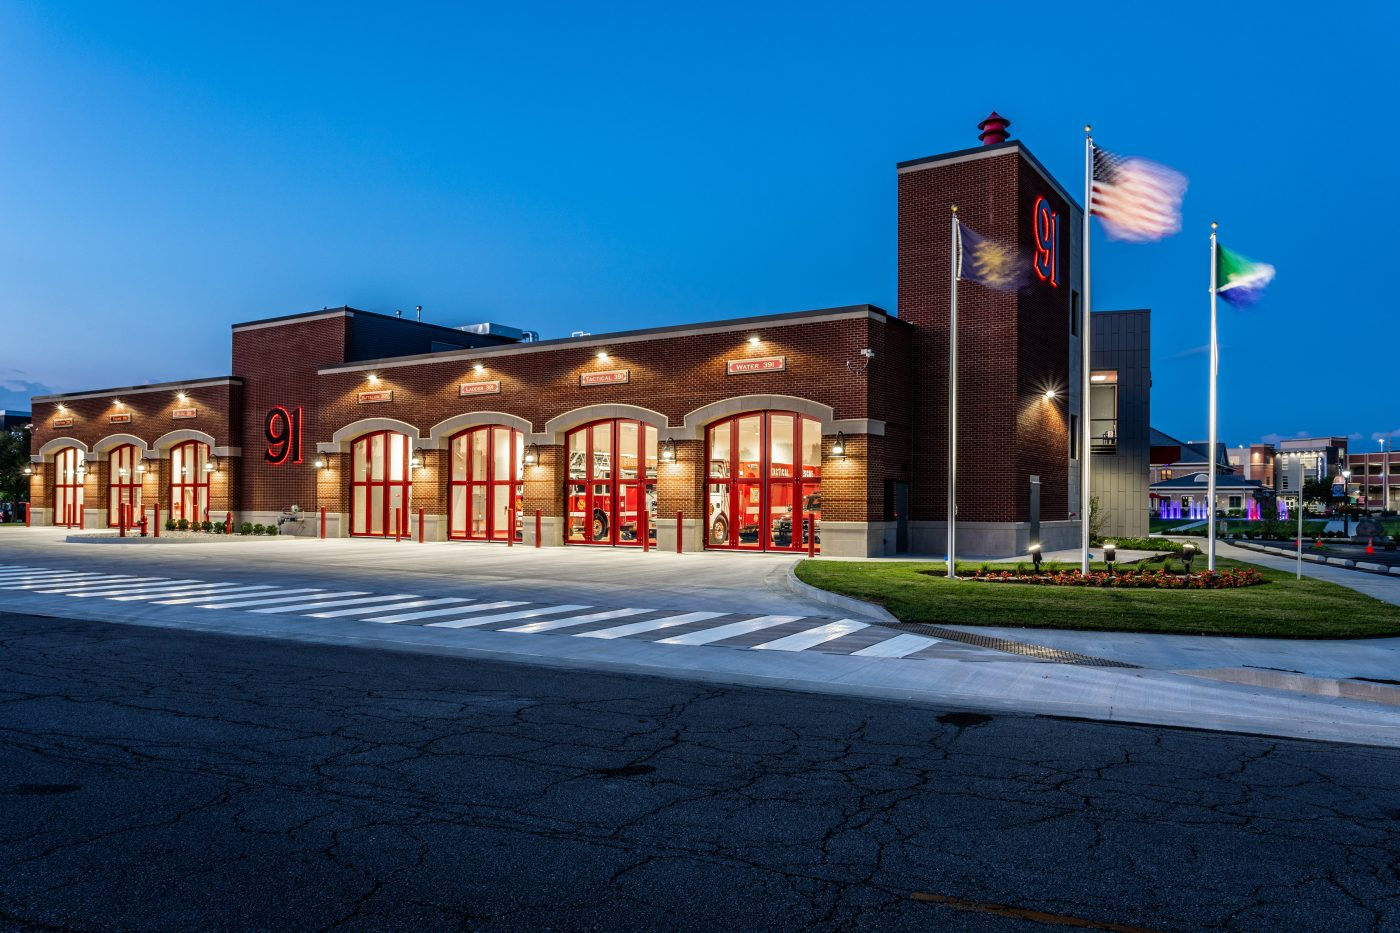 Fire Station 91